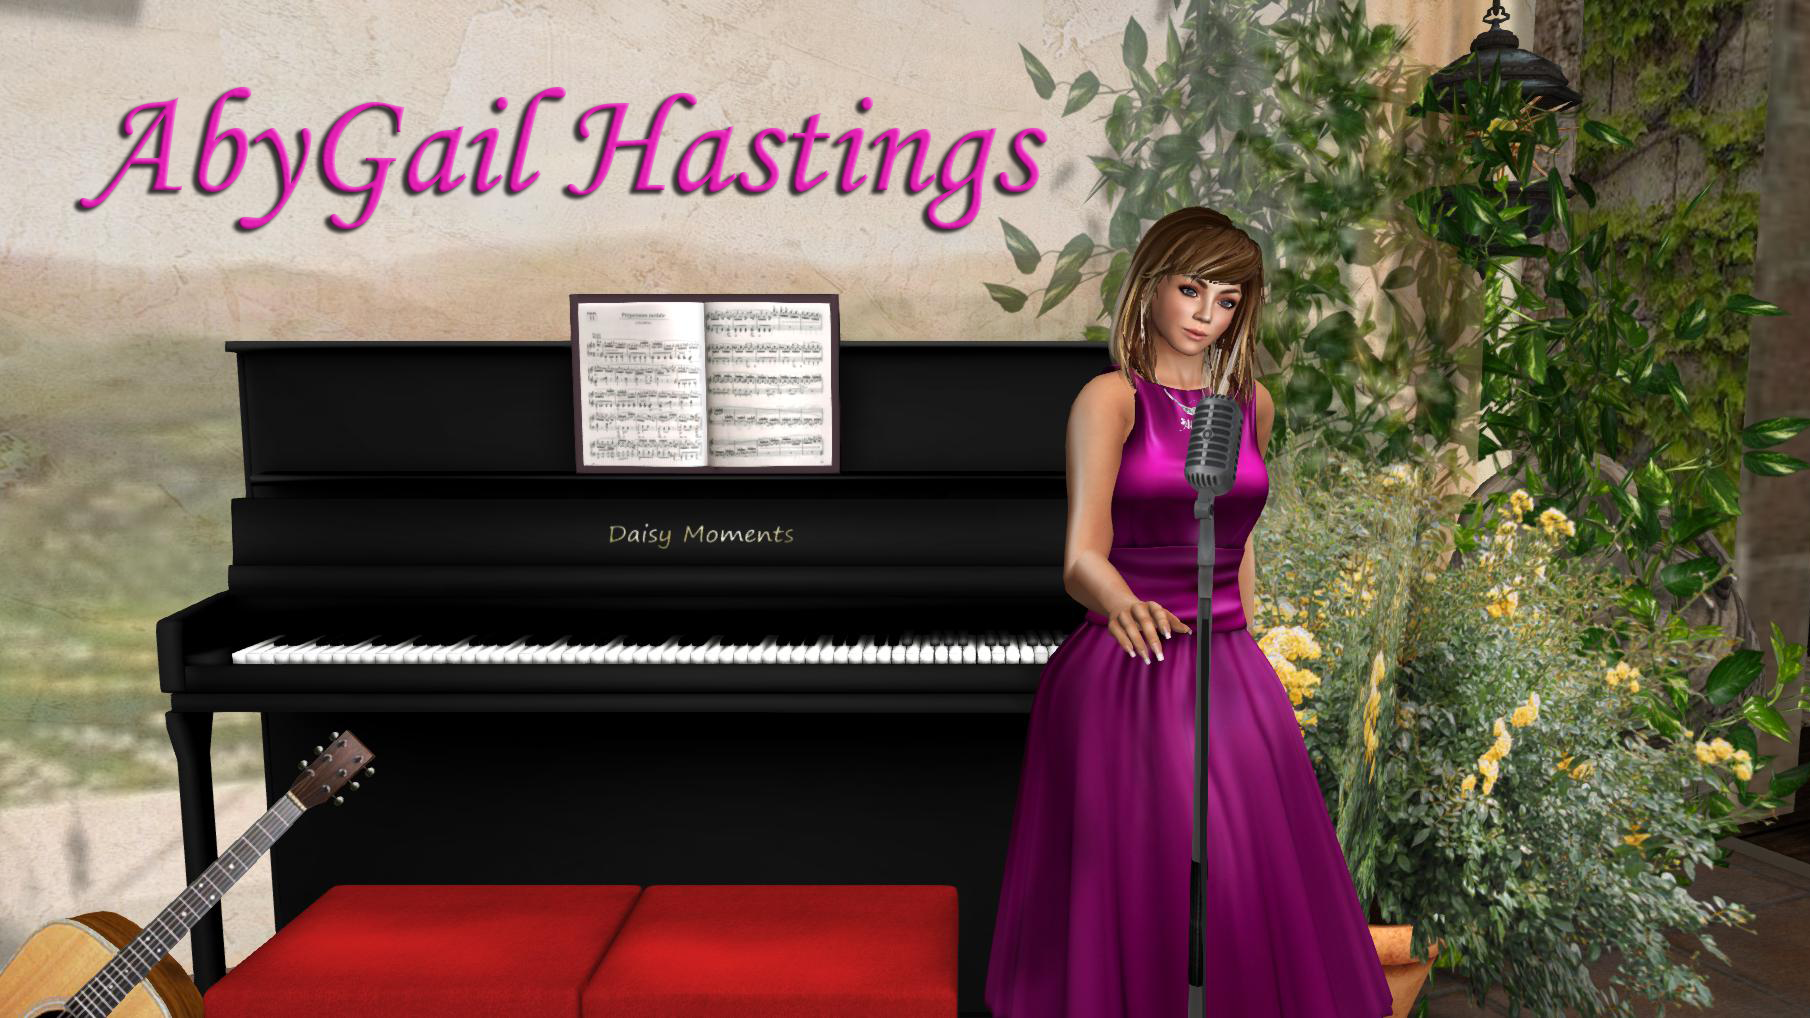 Photo of Aby singing at a microphone in front of a piano with text AbyGail Hastings